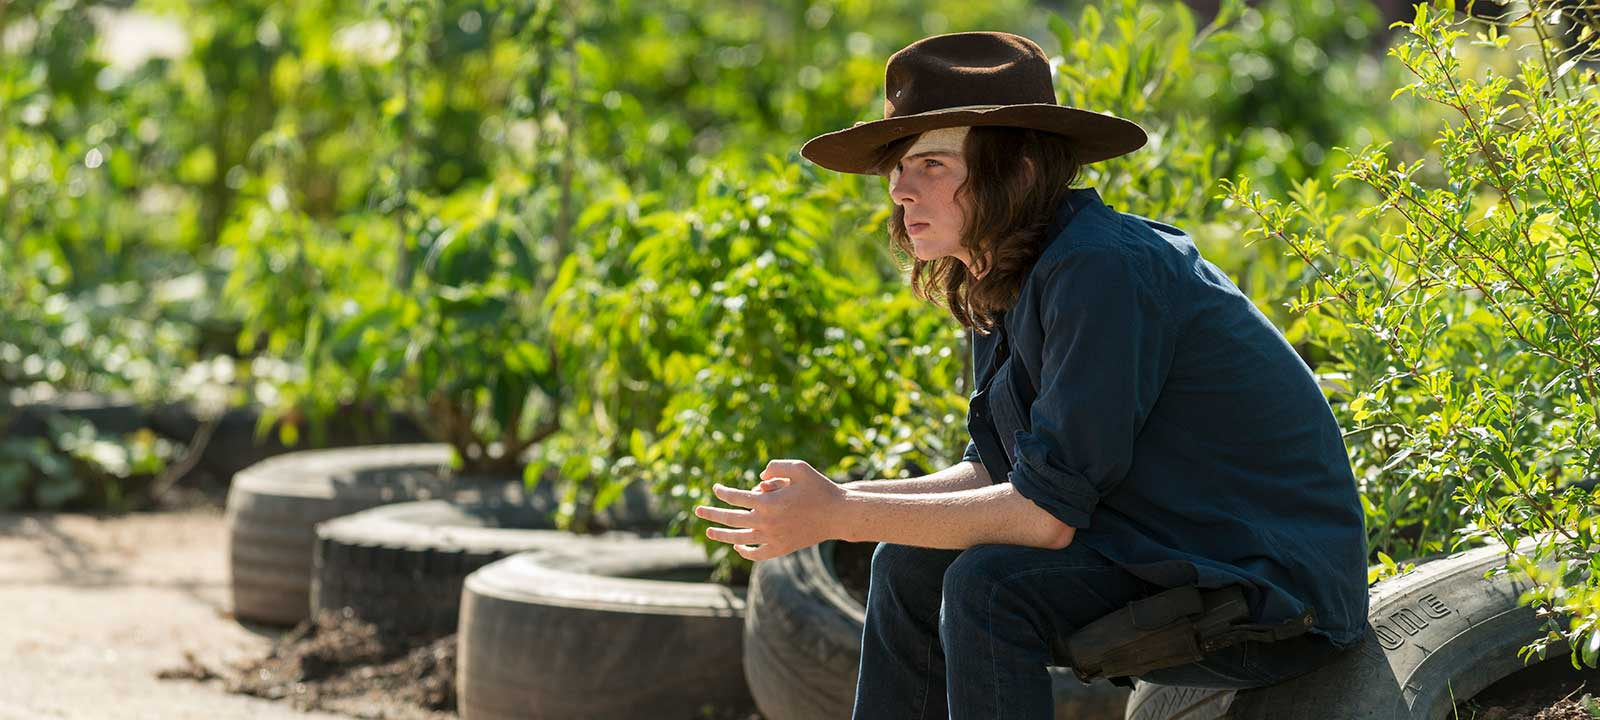 the-walking-dead-episode-709-carl-riggs-interview-800×600